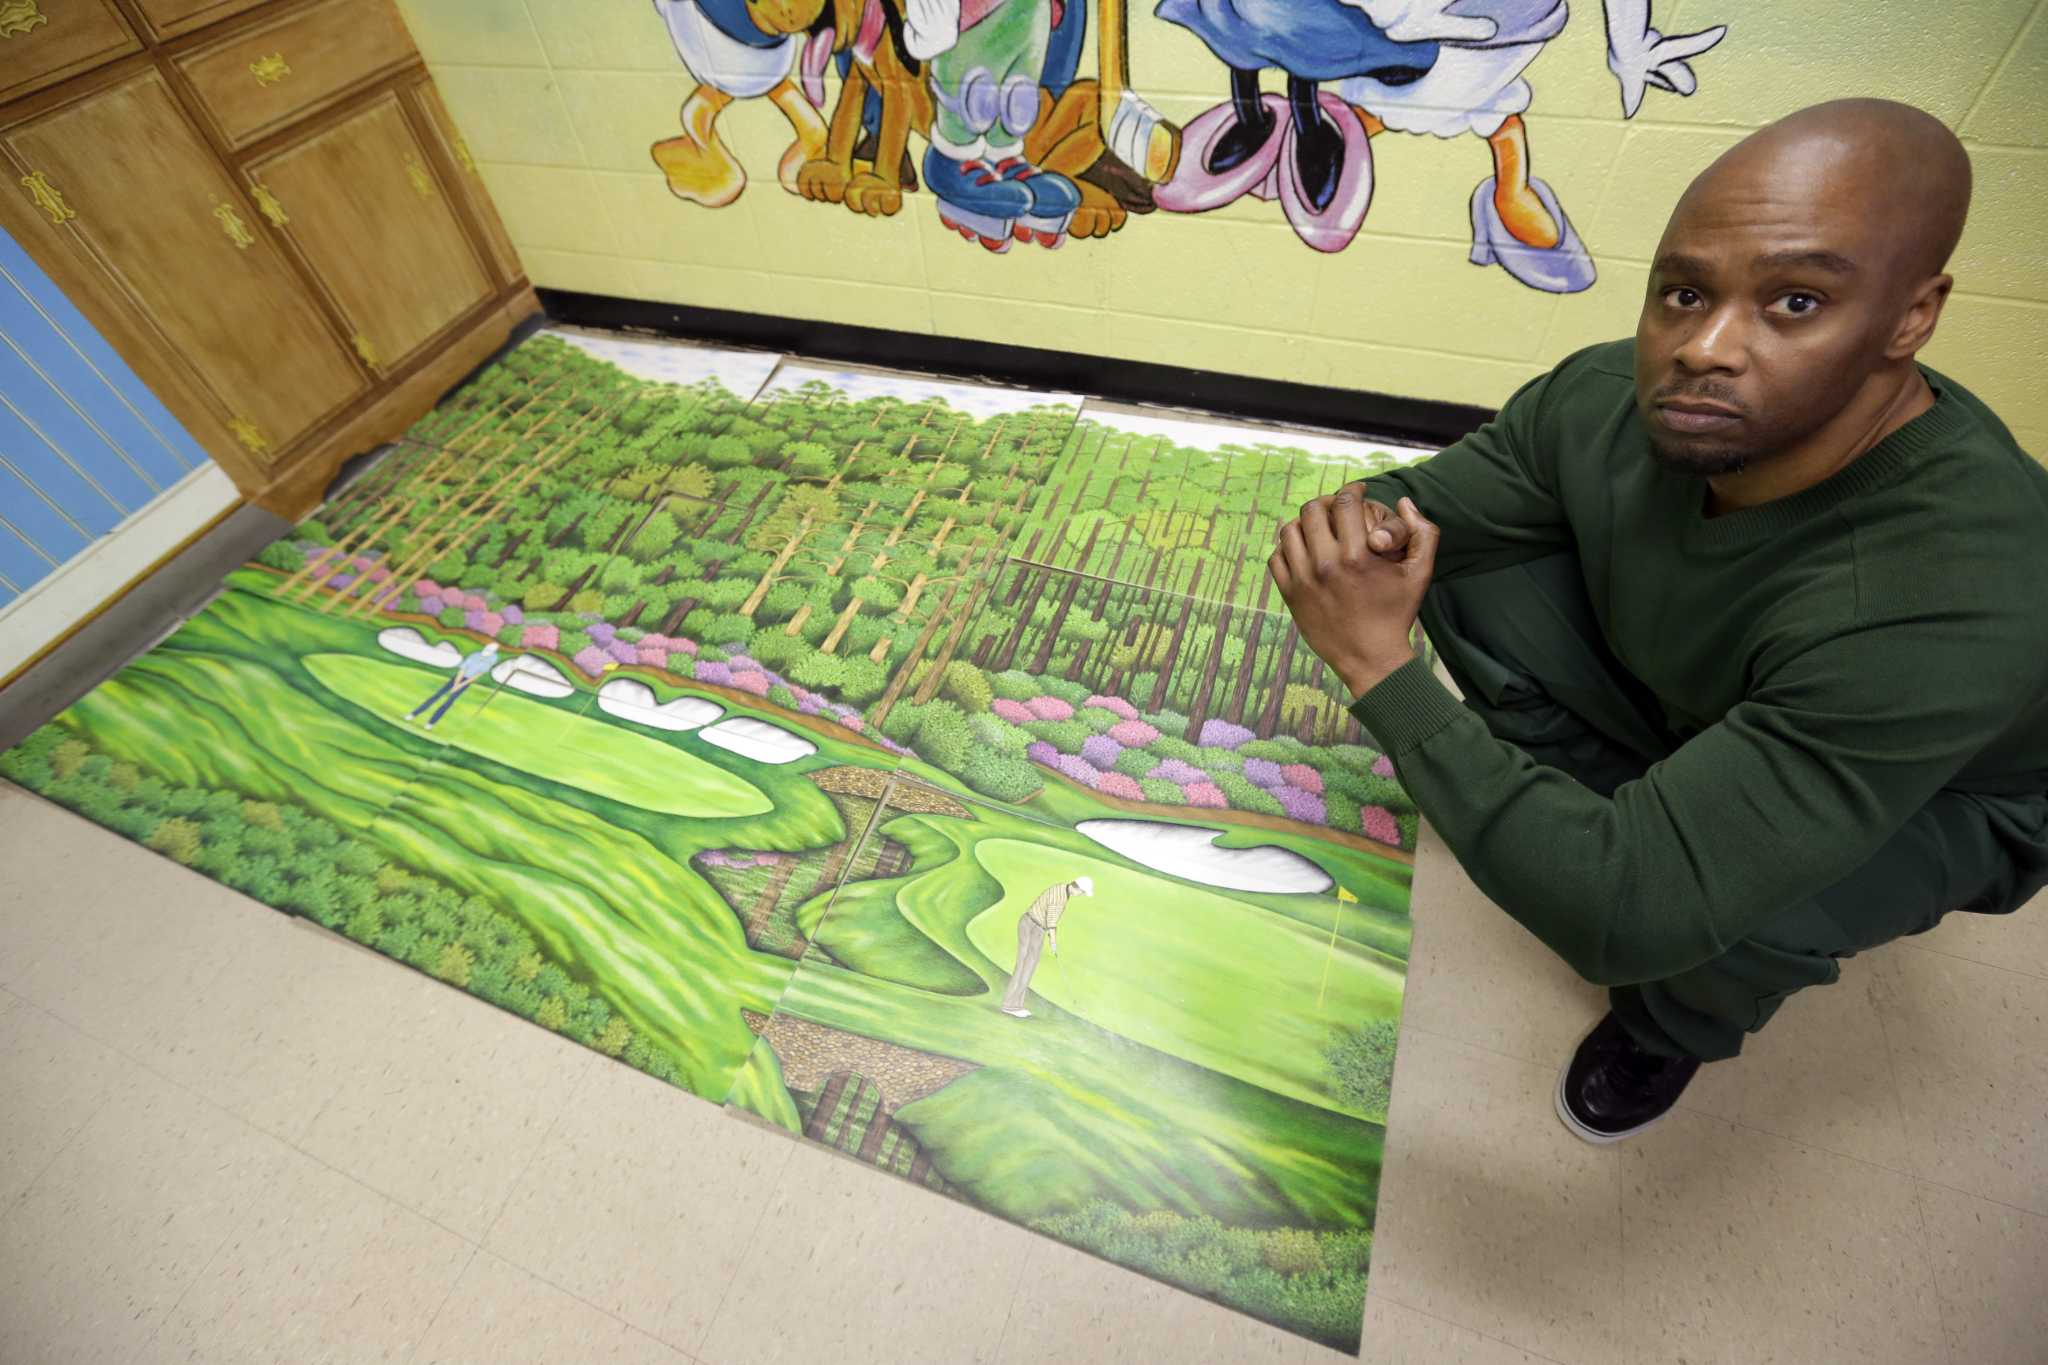 Golf magazine helps free golf-course artist imprisoned 27 years https://t.co/rn1g7Bb00M https://t.co/gYlVCZ2SeY